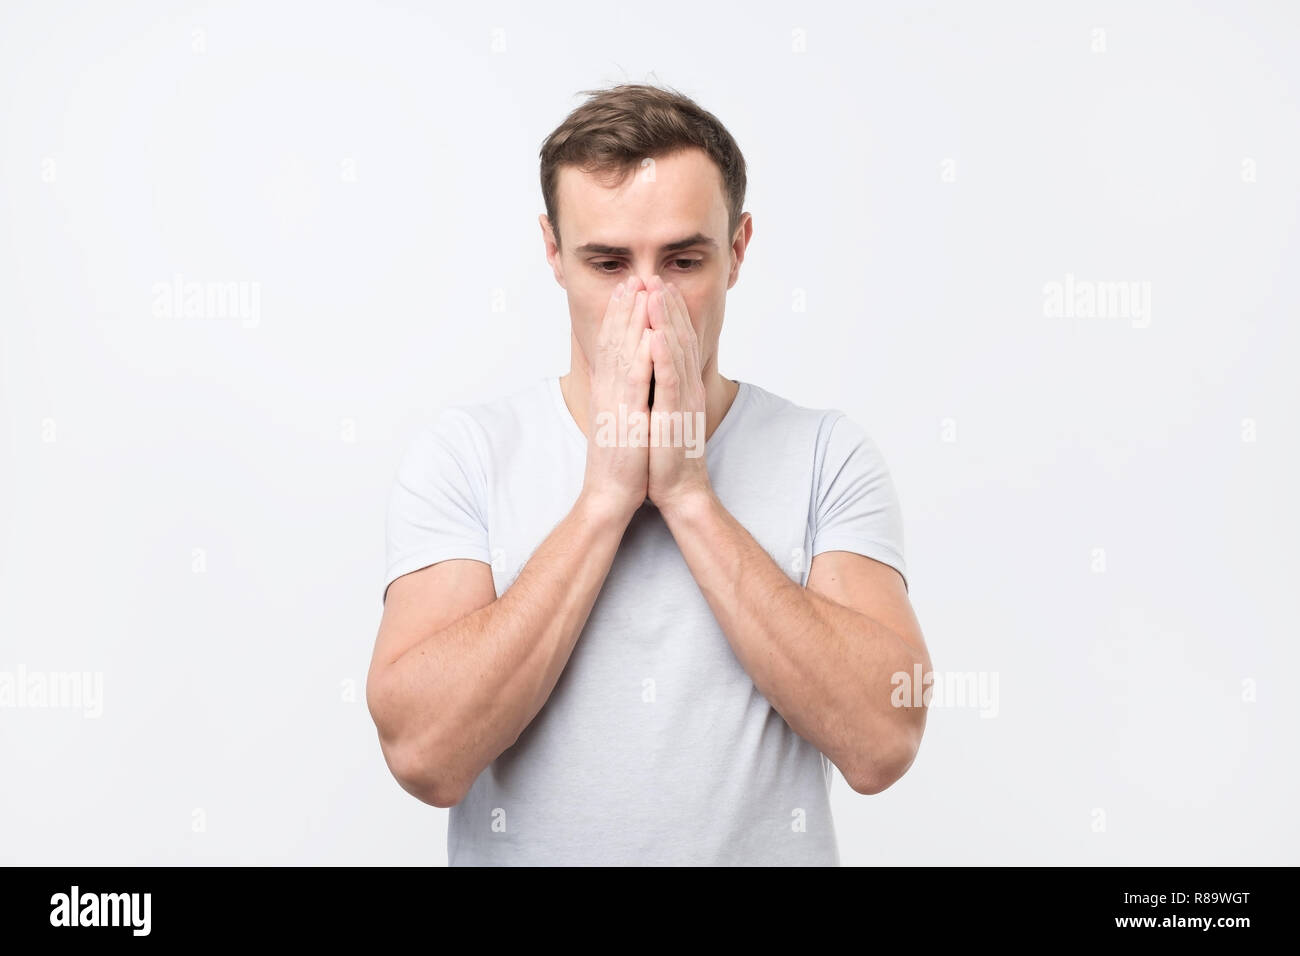 Young tired, fatigued man with worried face, stressed, dragging face down with hands. - Stock Image